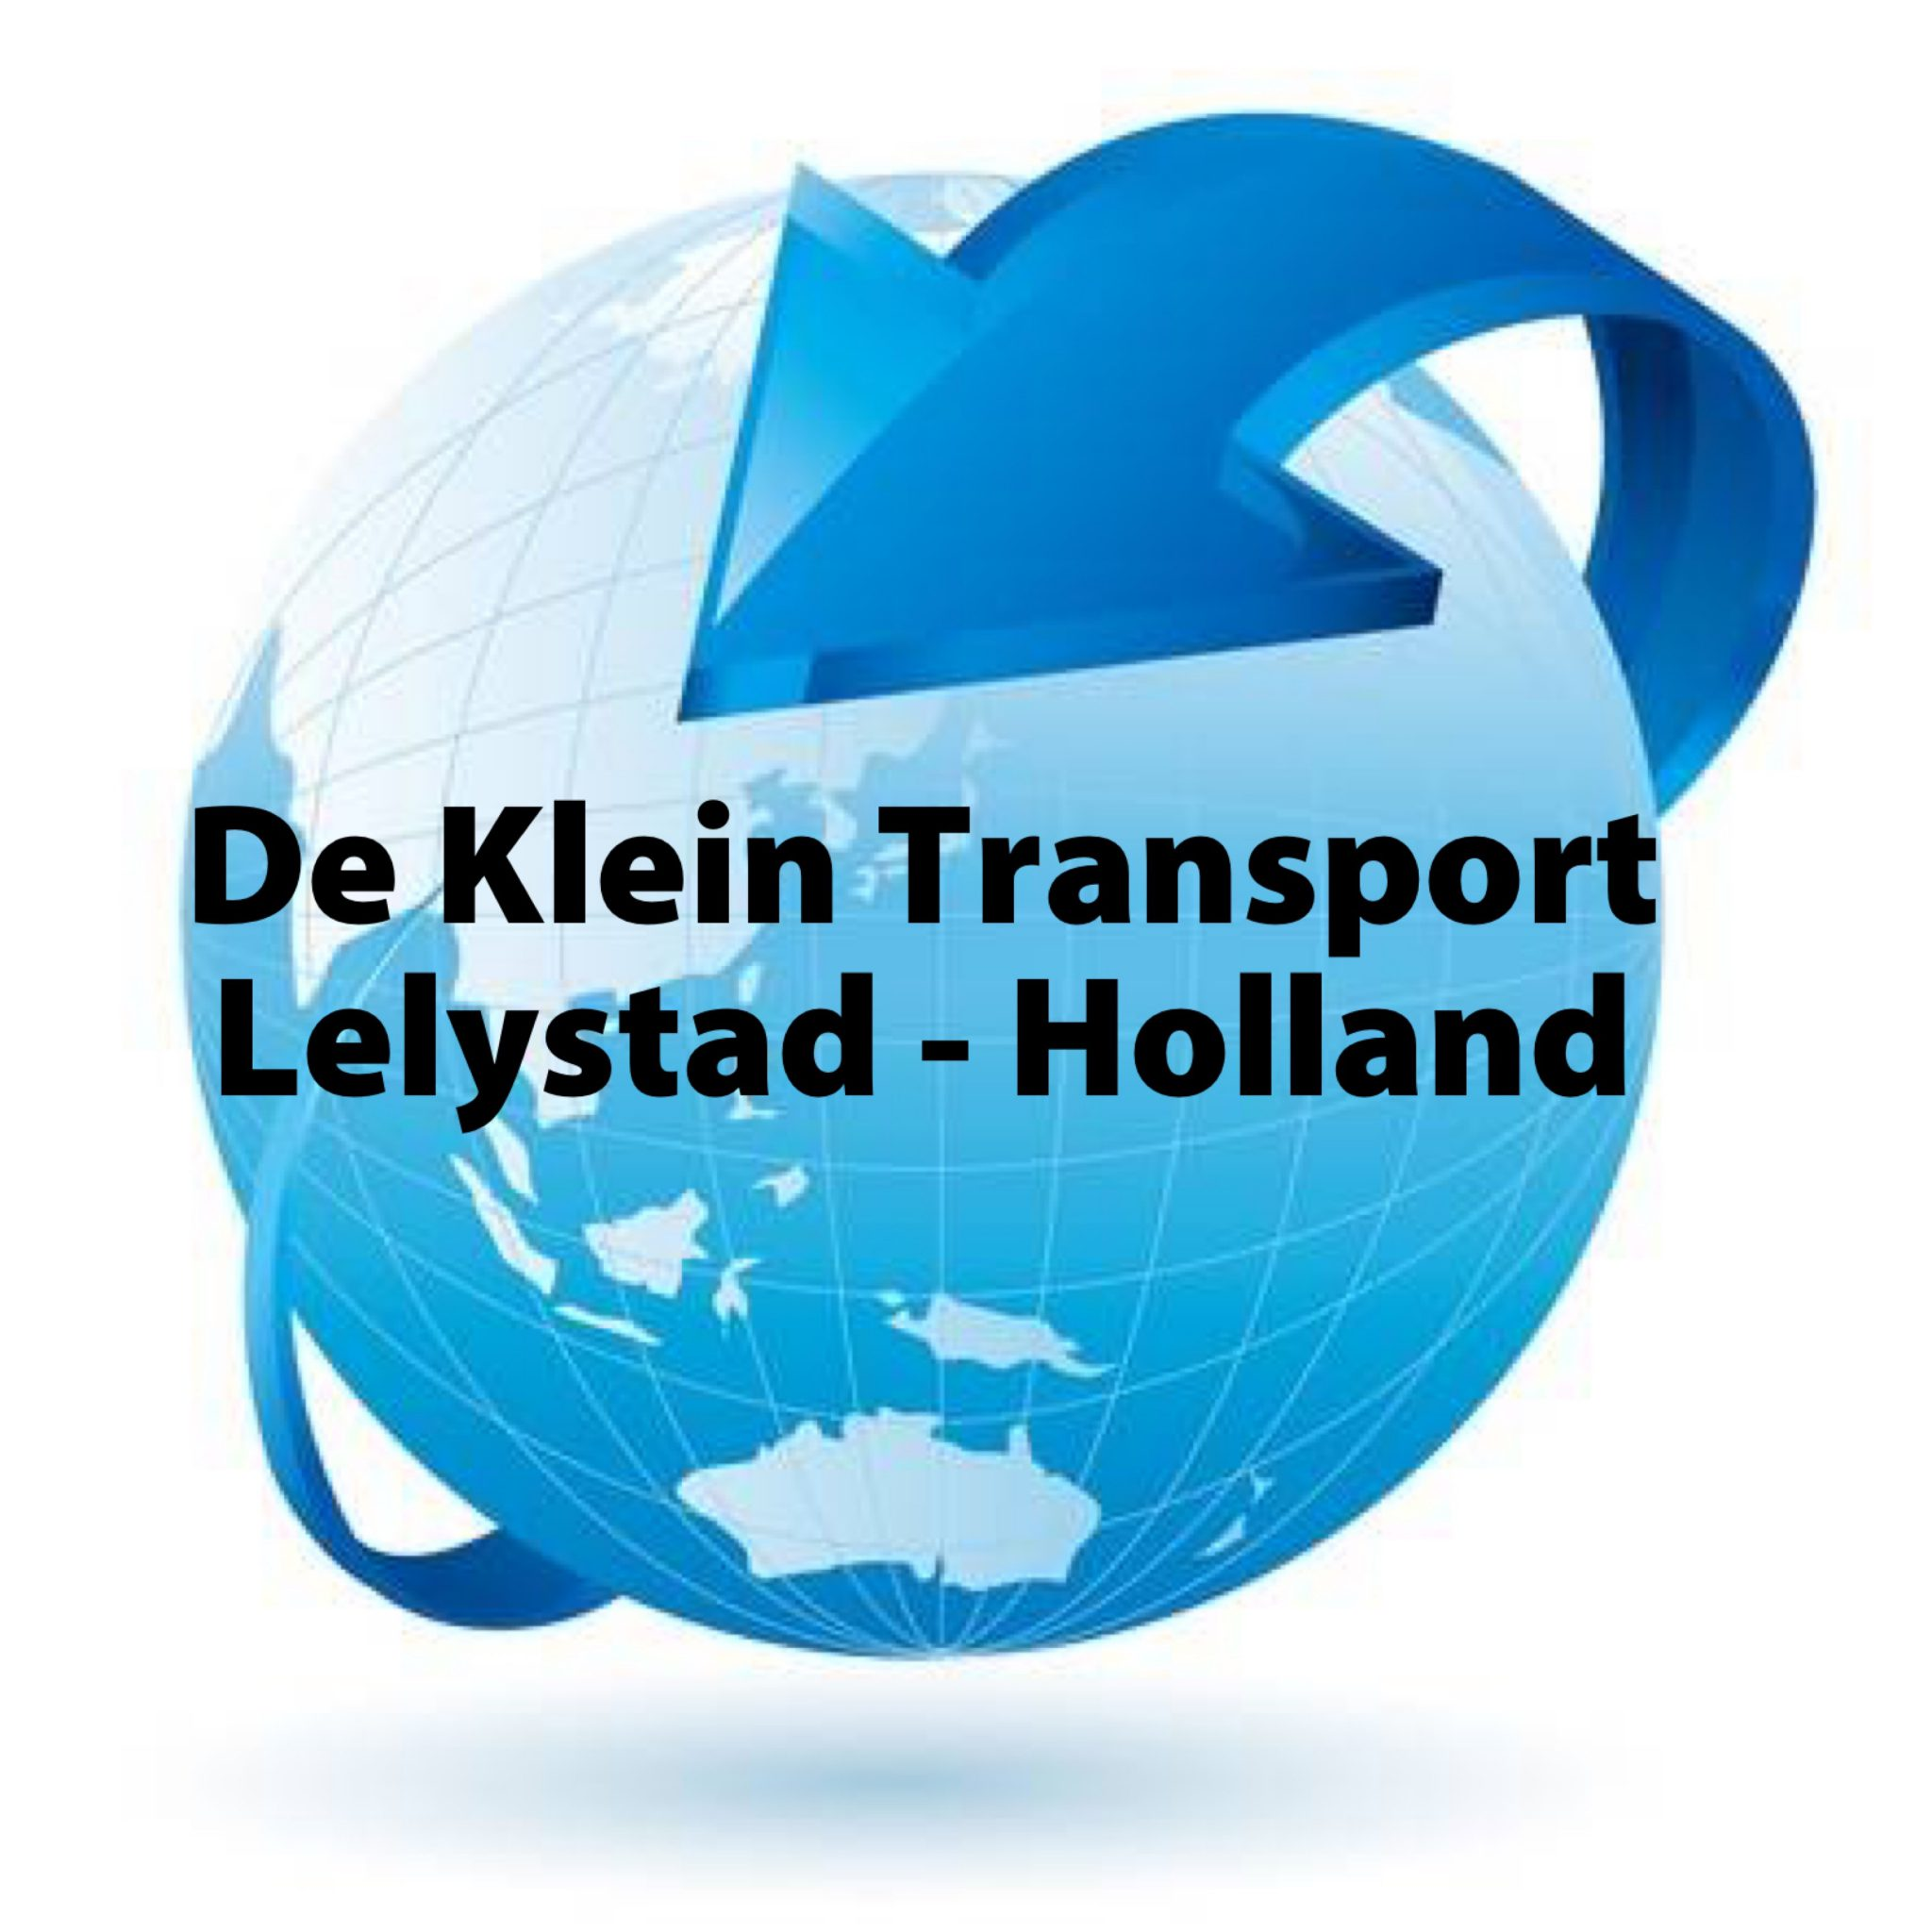 De Klein Transport